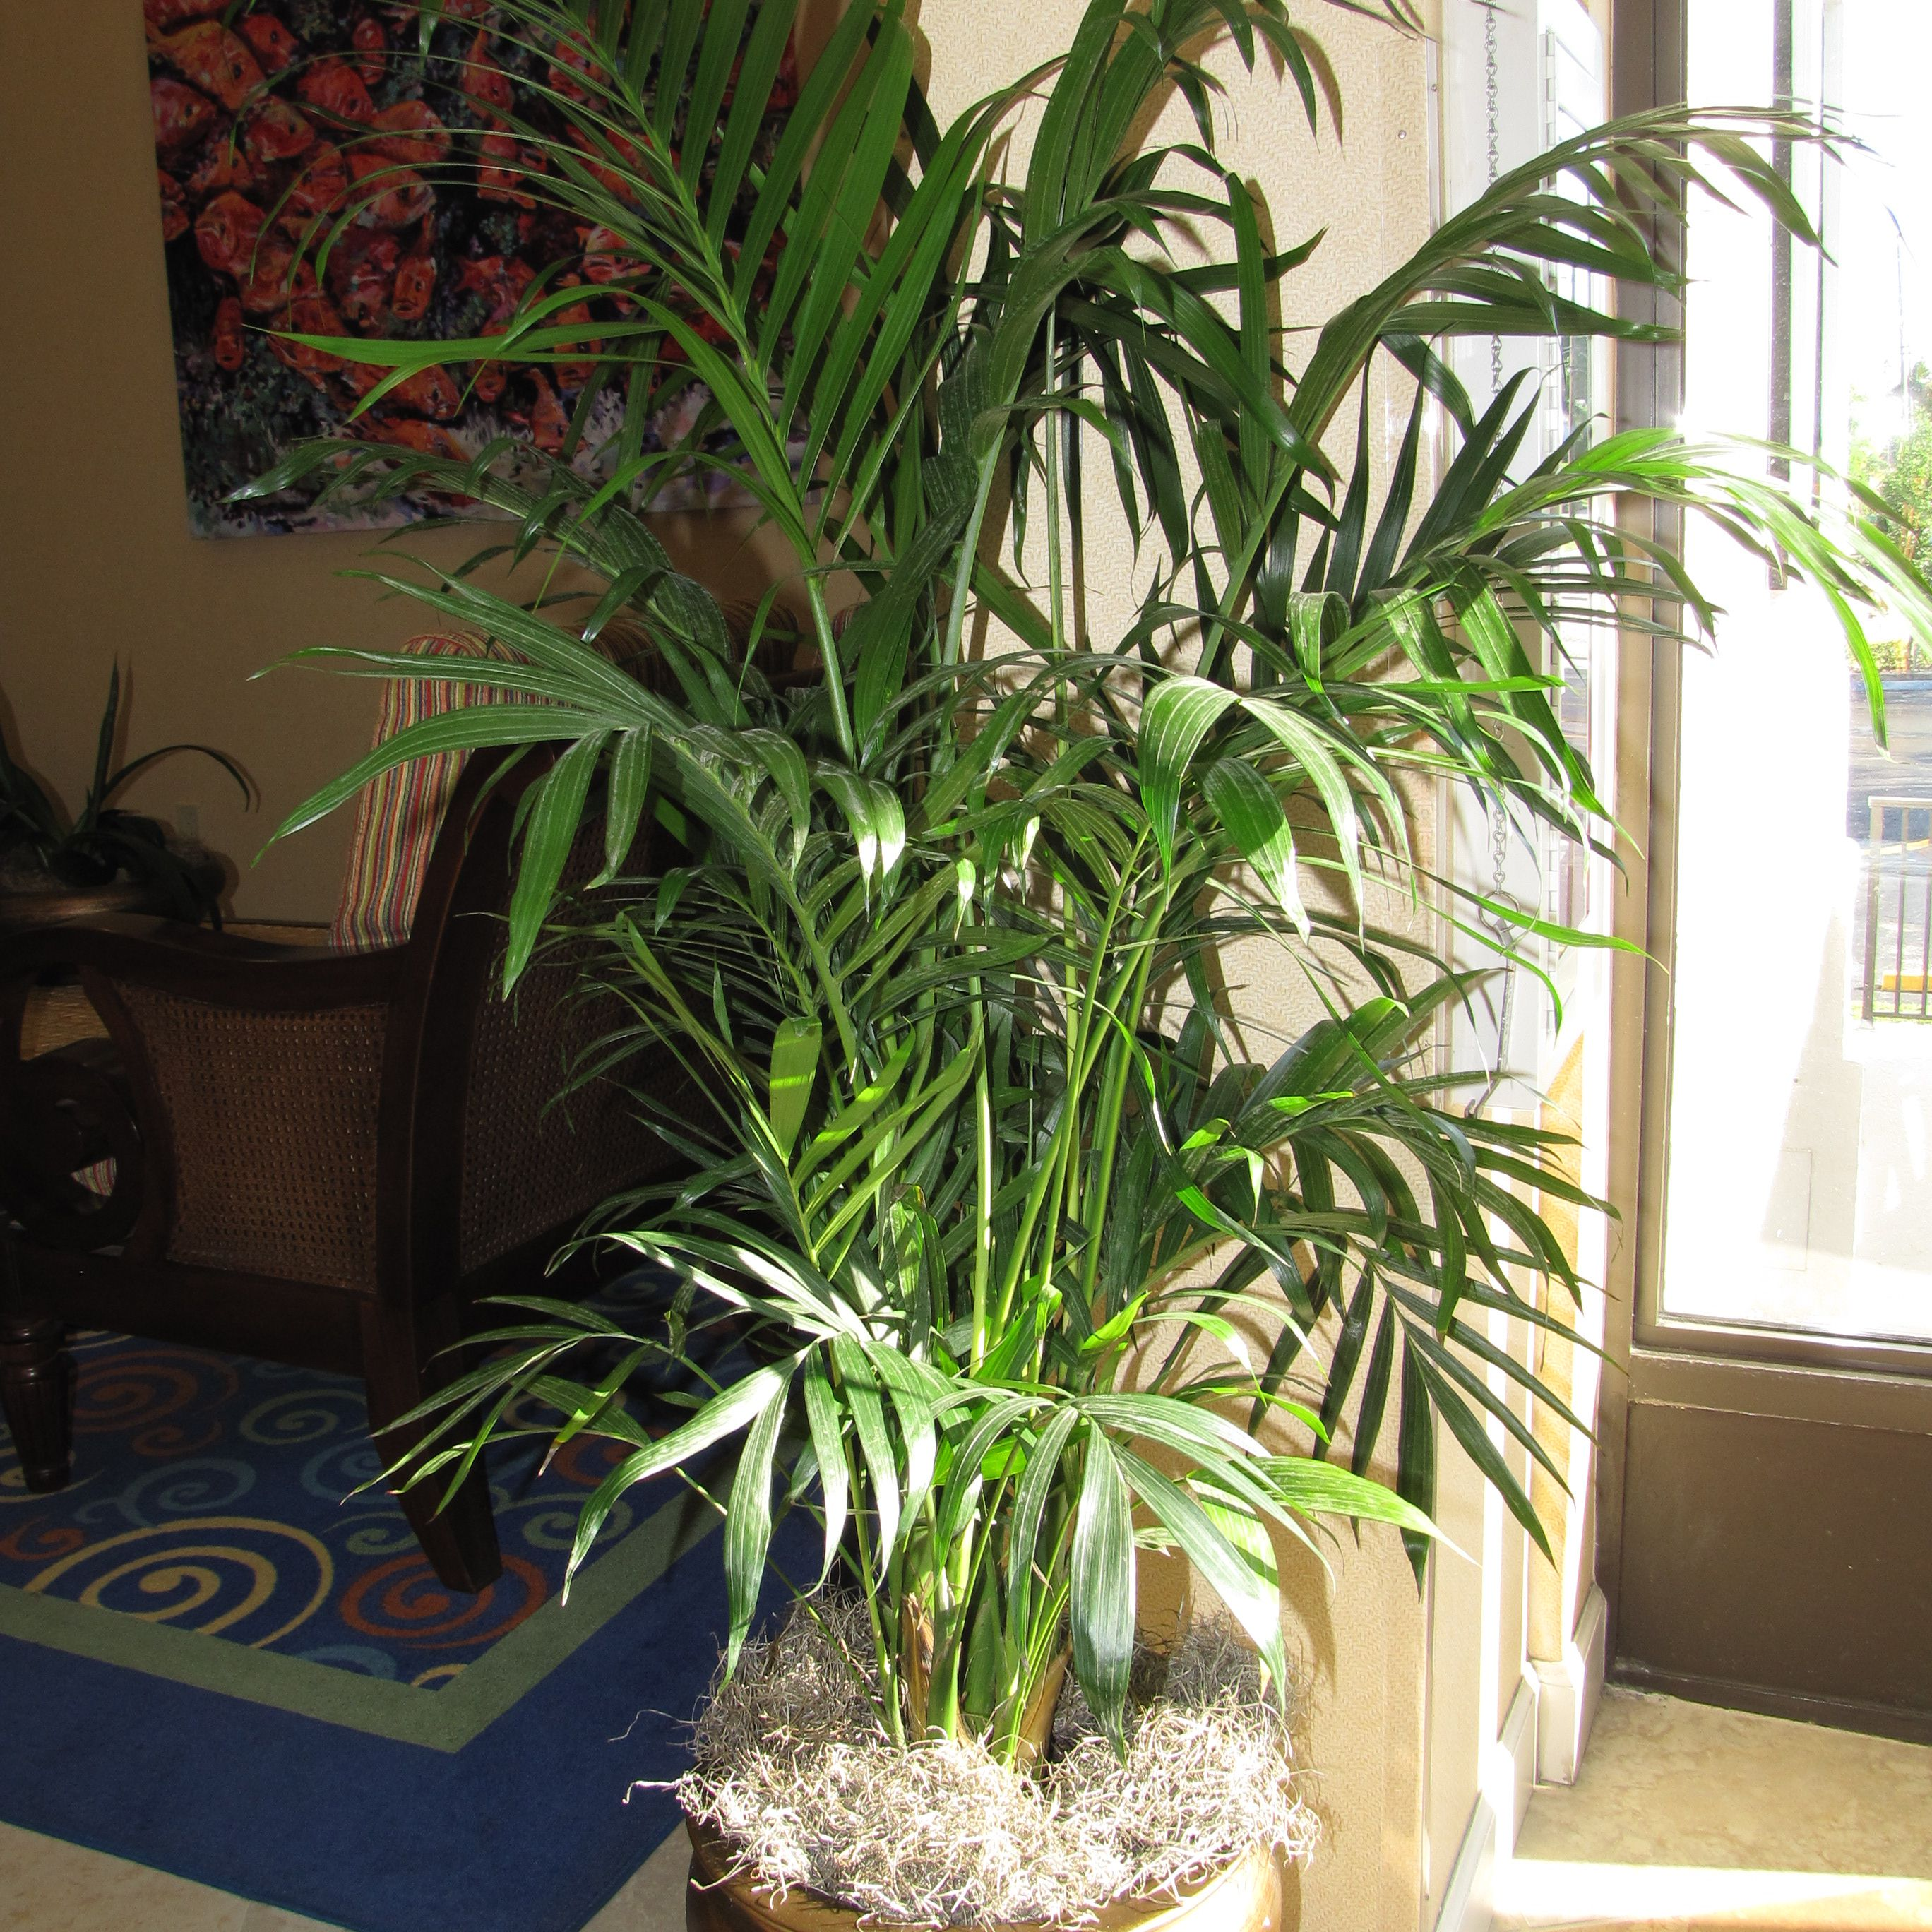 Palm Plants For Indoors: Types Of Indoor Palm Plants To Grow